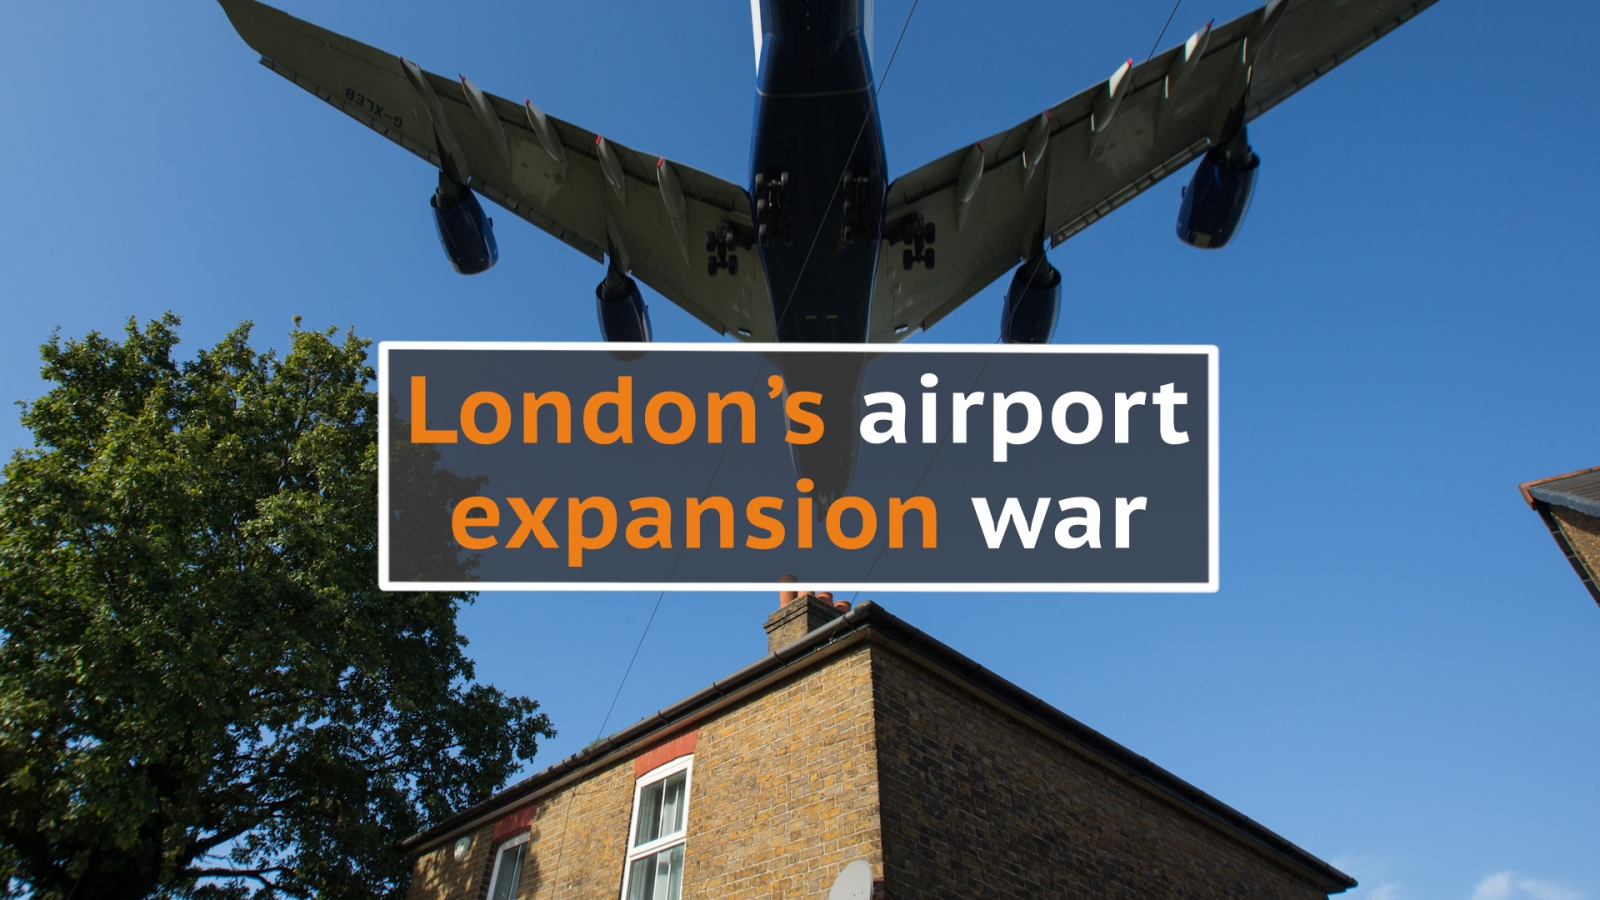 London's airport expansion war